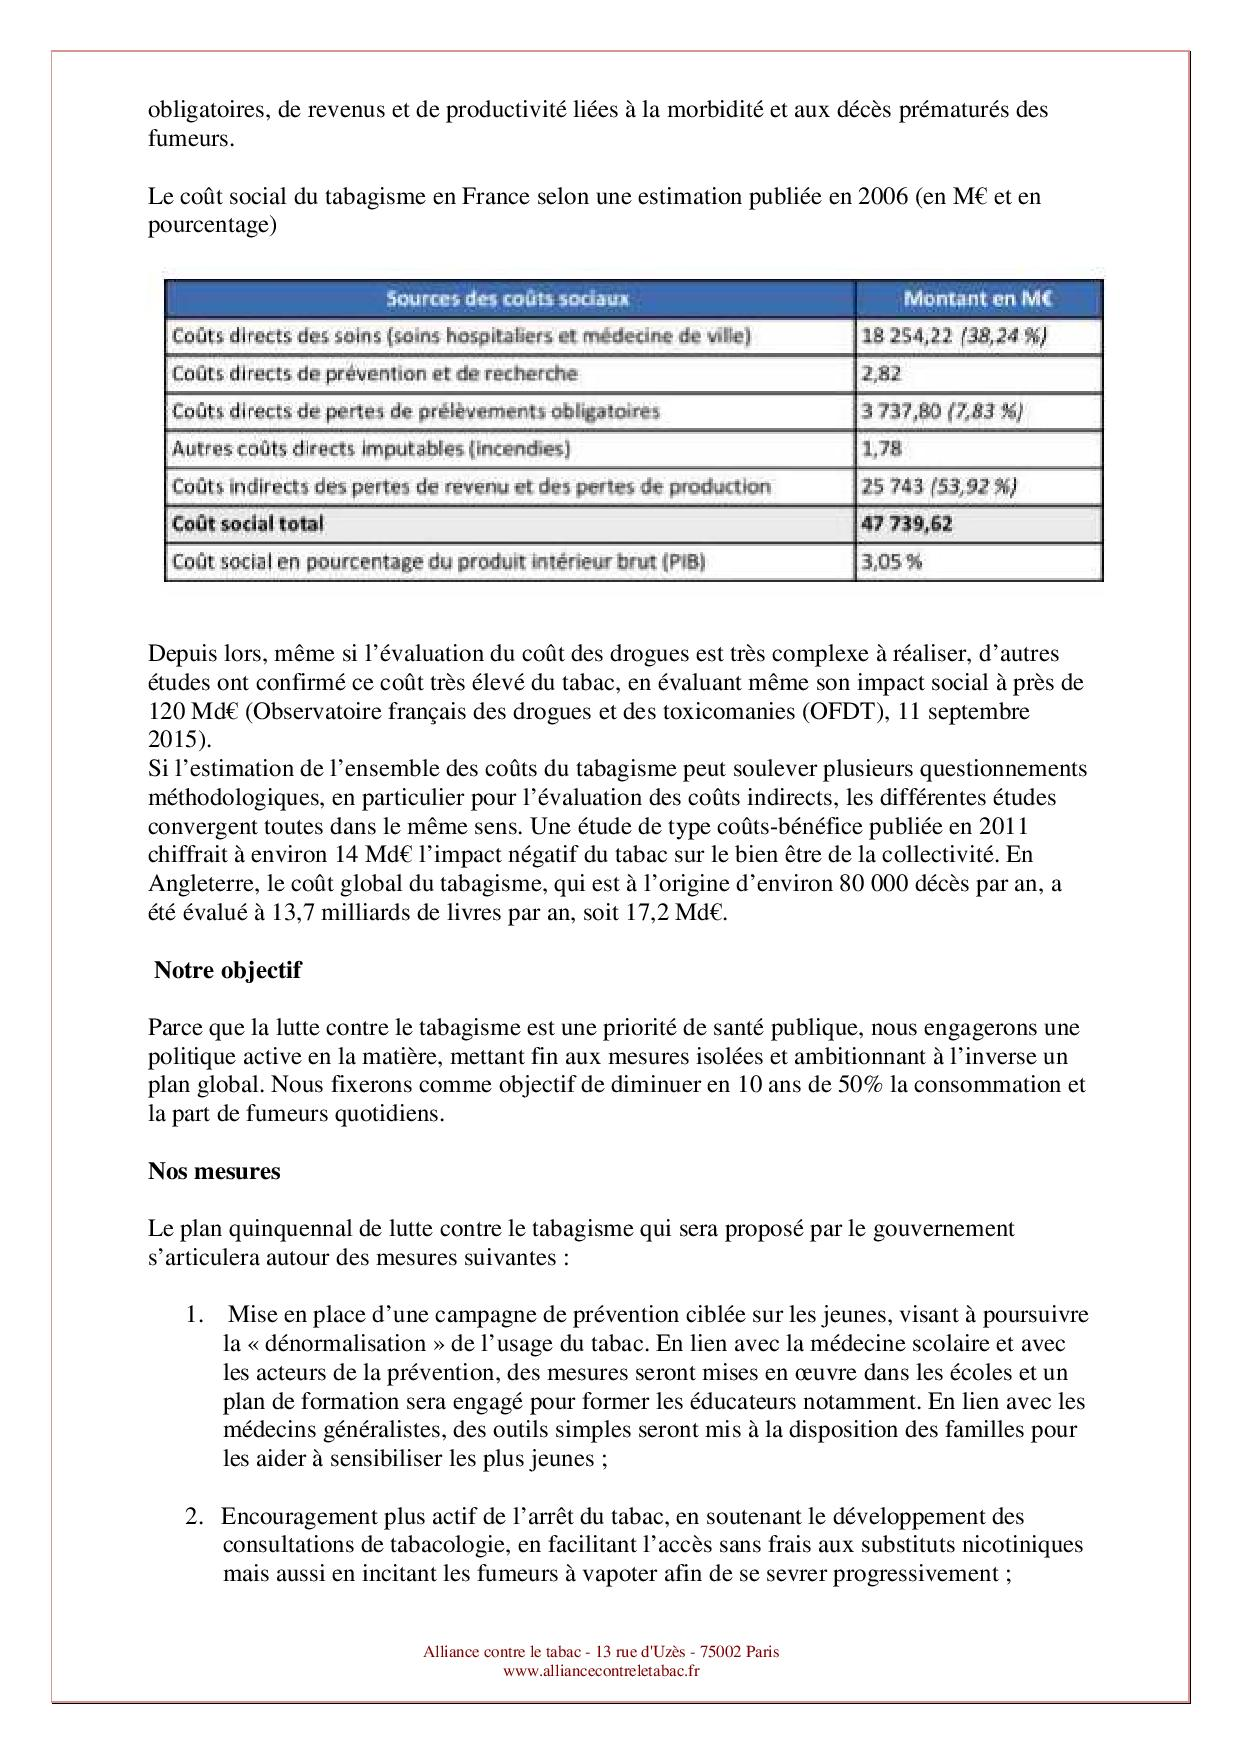 Alliance contre le tabac - DP - 11042017-page-014.jpg